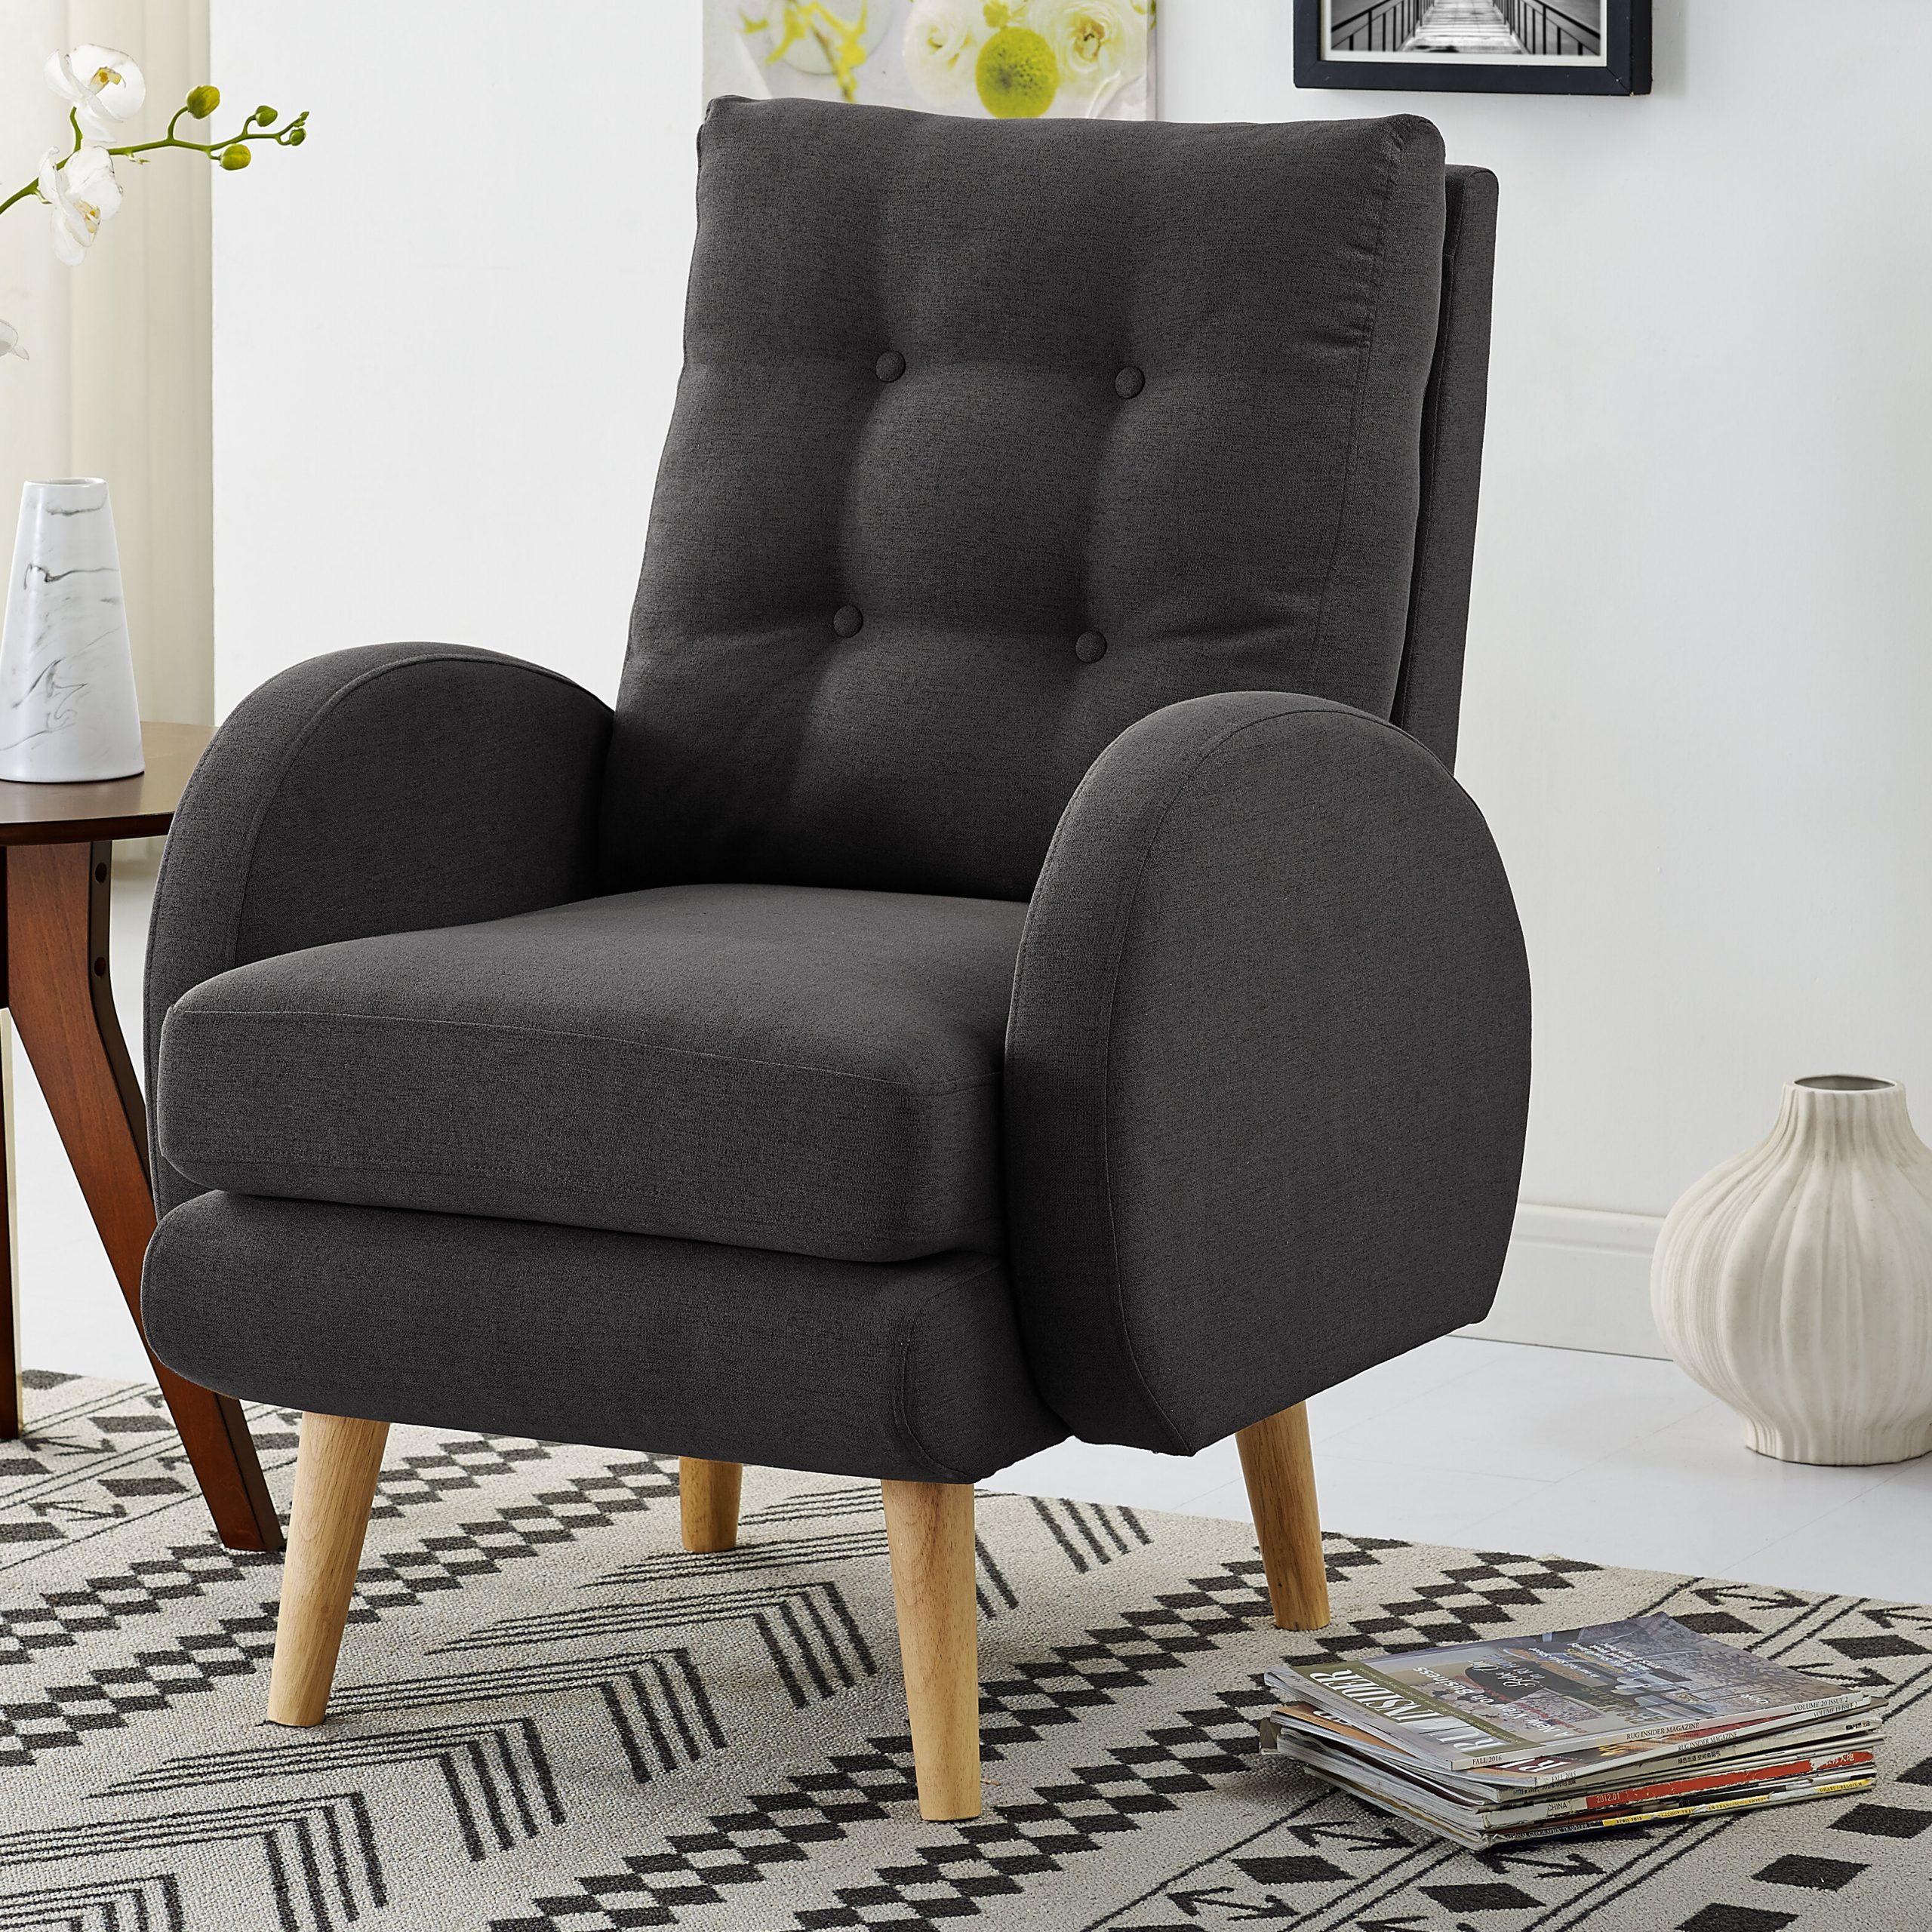 Hiltz Armchair With Regard To Claudel Polyester Blend Barrel Chairs (View 11 of 15)